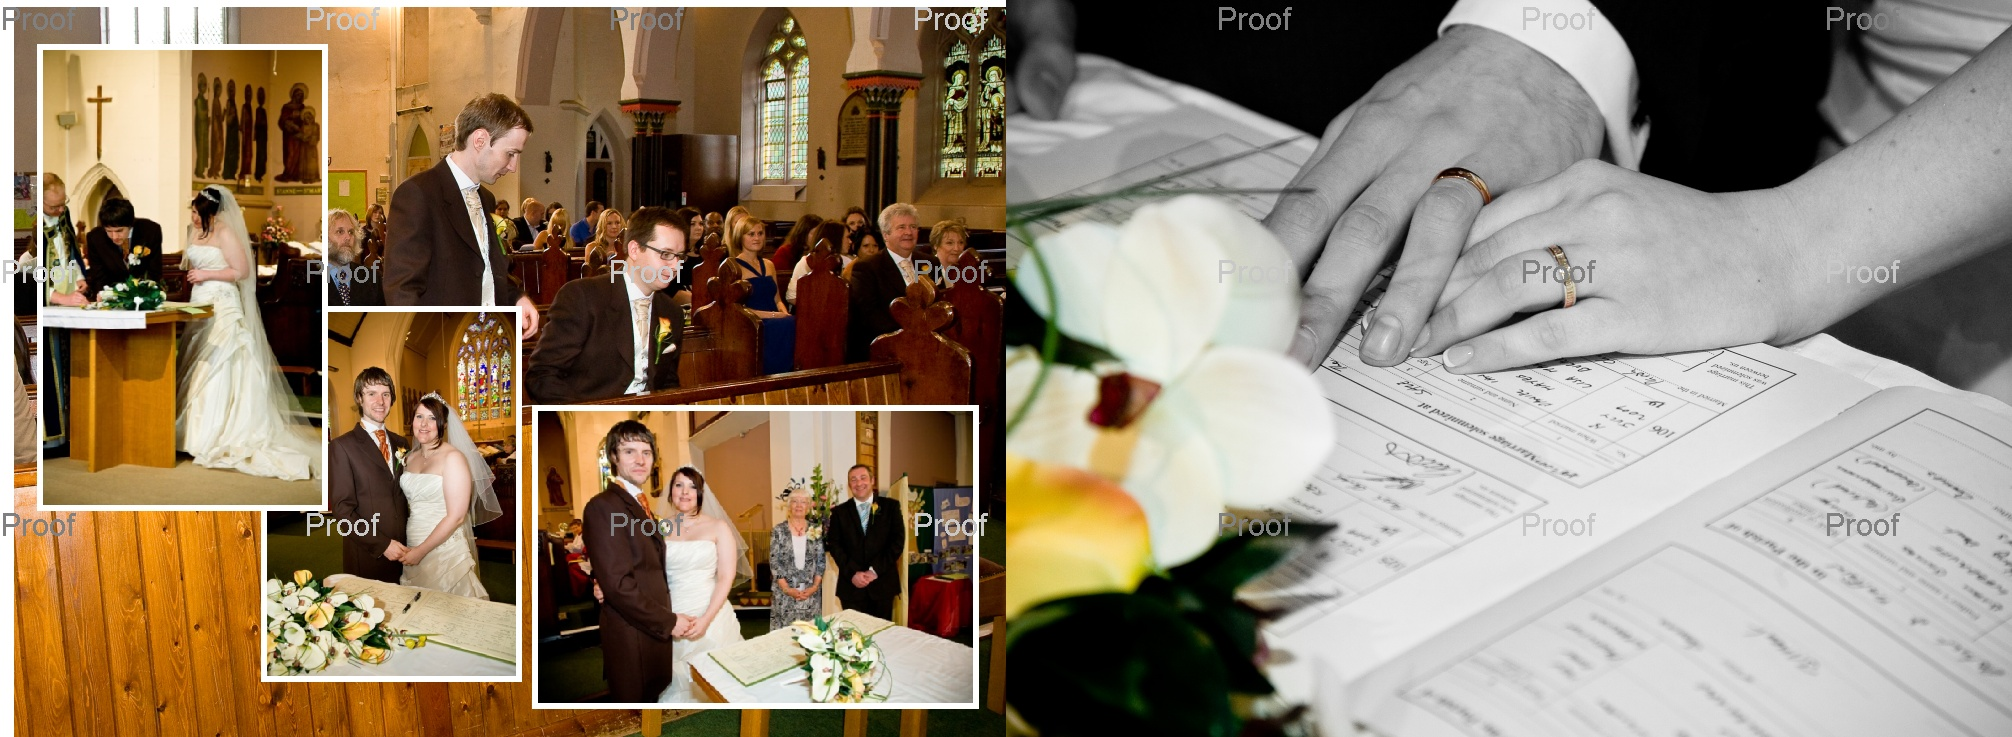 pages 18-19 of wedding storybook album design showing wedding ceremony at church in Manchester